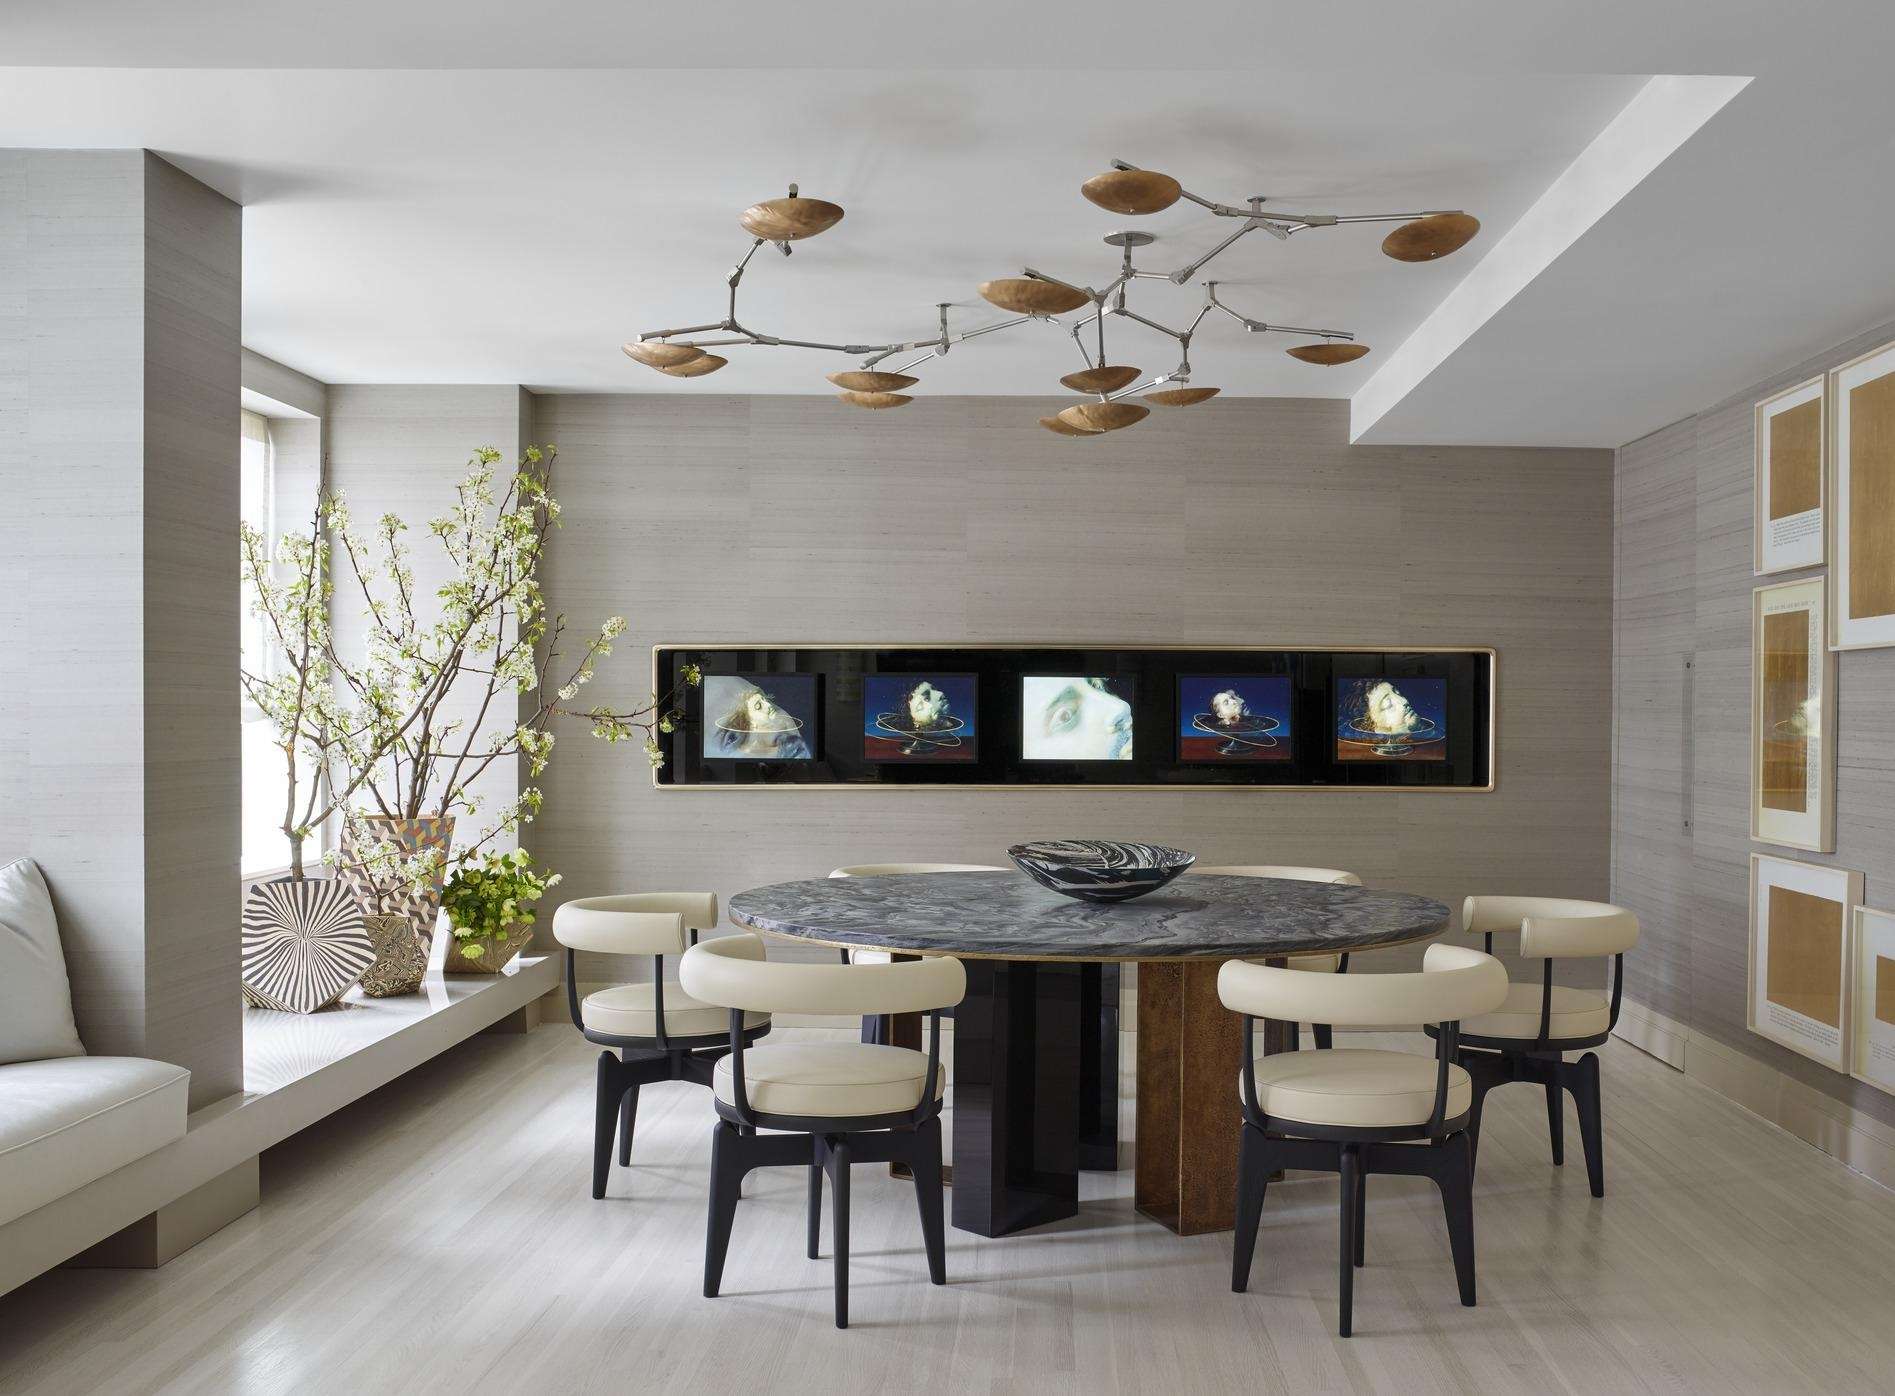 25 Modern Dining Room Decorating Ideas – Contemporary Dining Room Within Modern Wall Art For Dining Room (View 2 of 20)